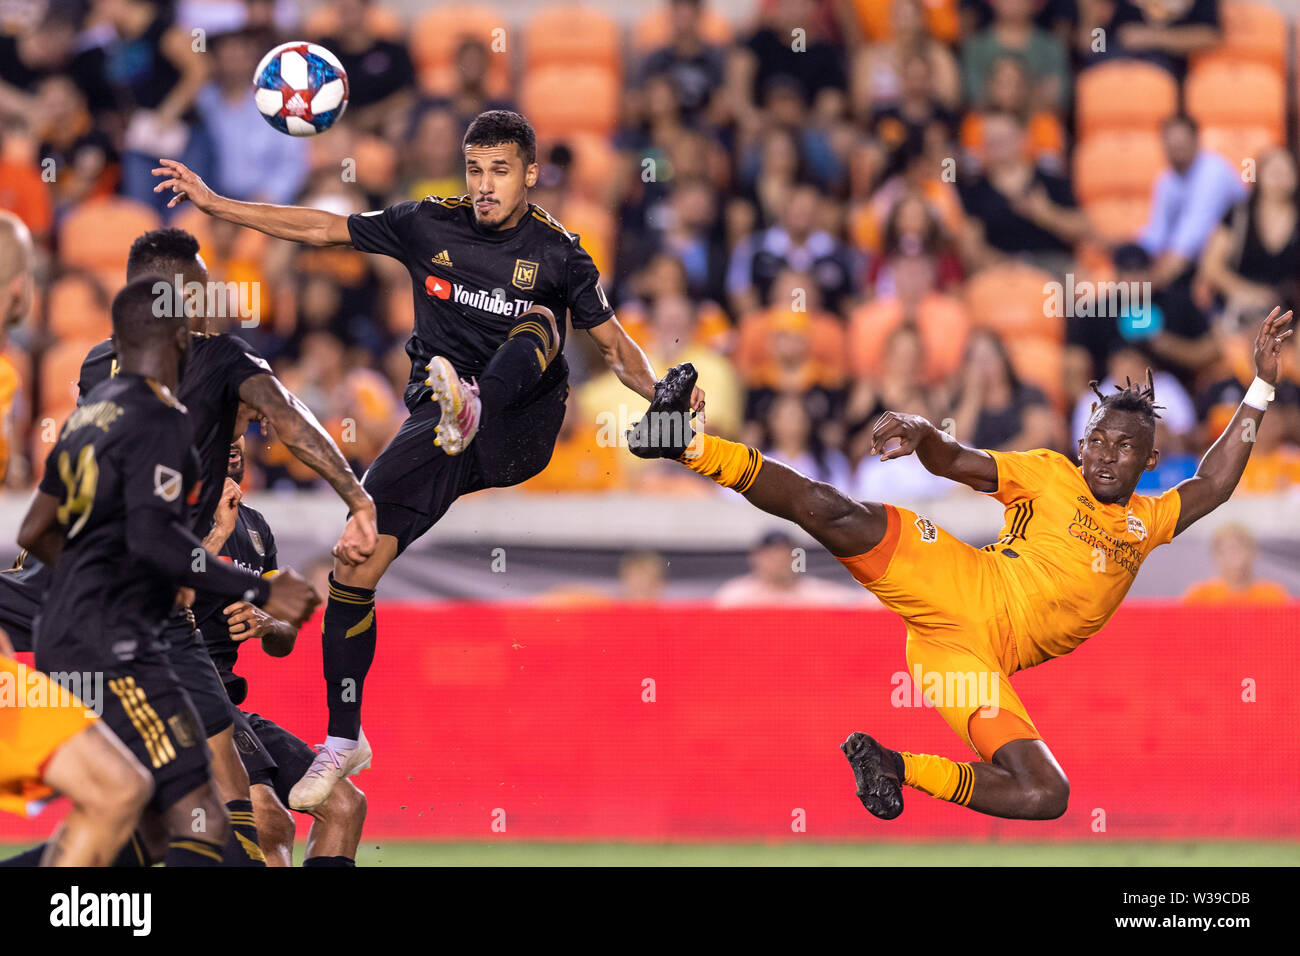 Houston, Texas, USA. 12th July, 2019. Houston Dynamo forward Alberth Elis (17) and Los Angeles FC defender Steven Beitashour (3) during a match between Los Angeles FC and Houston Dynamo at BBVA Stadium in Houston, Texas. The final LAFC wins 3-1. Maria Lysaker/CSM/Alamy Live News - Stock Image